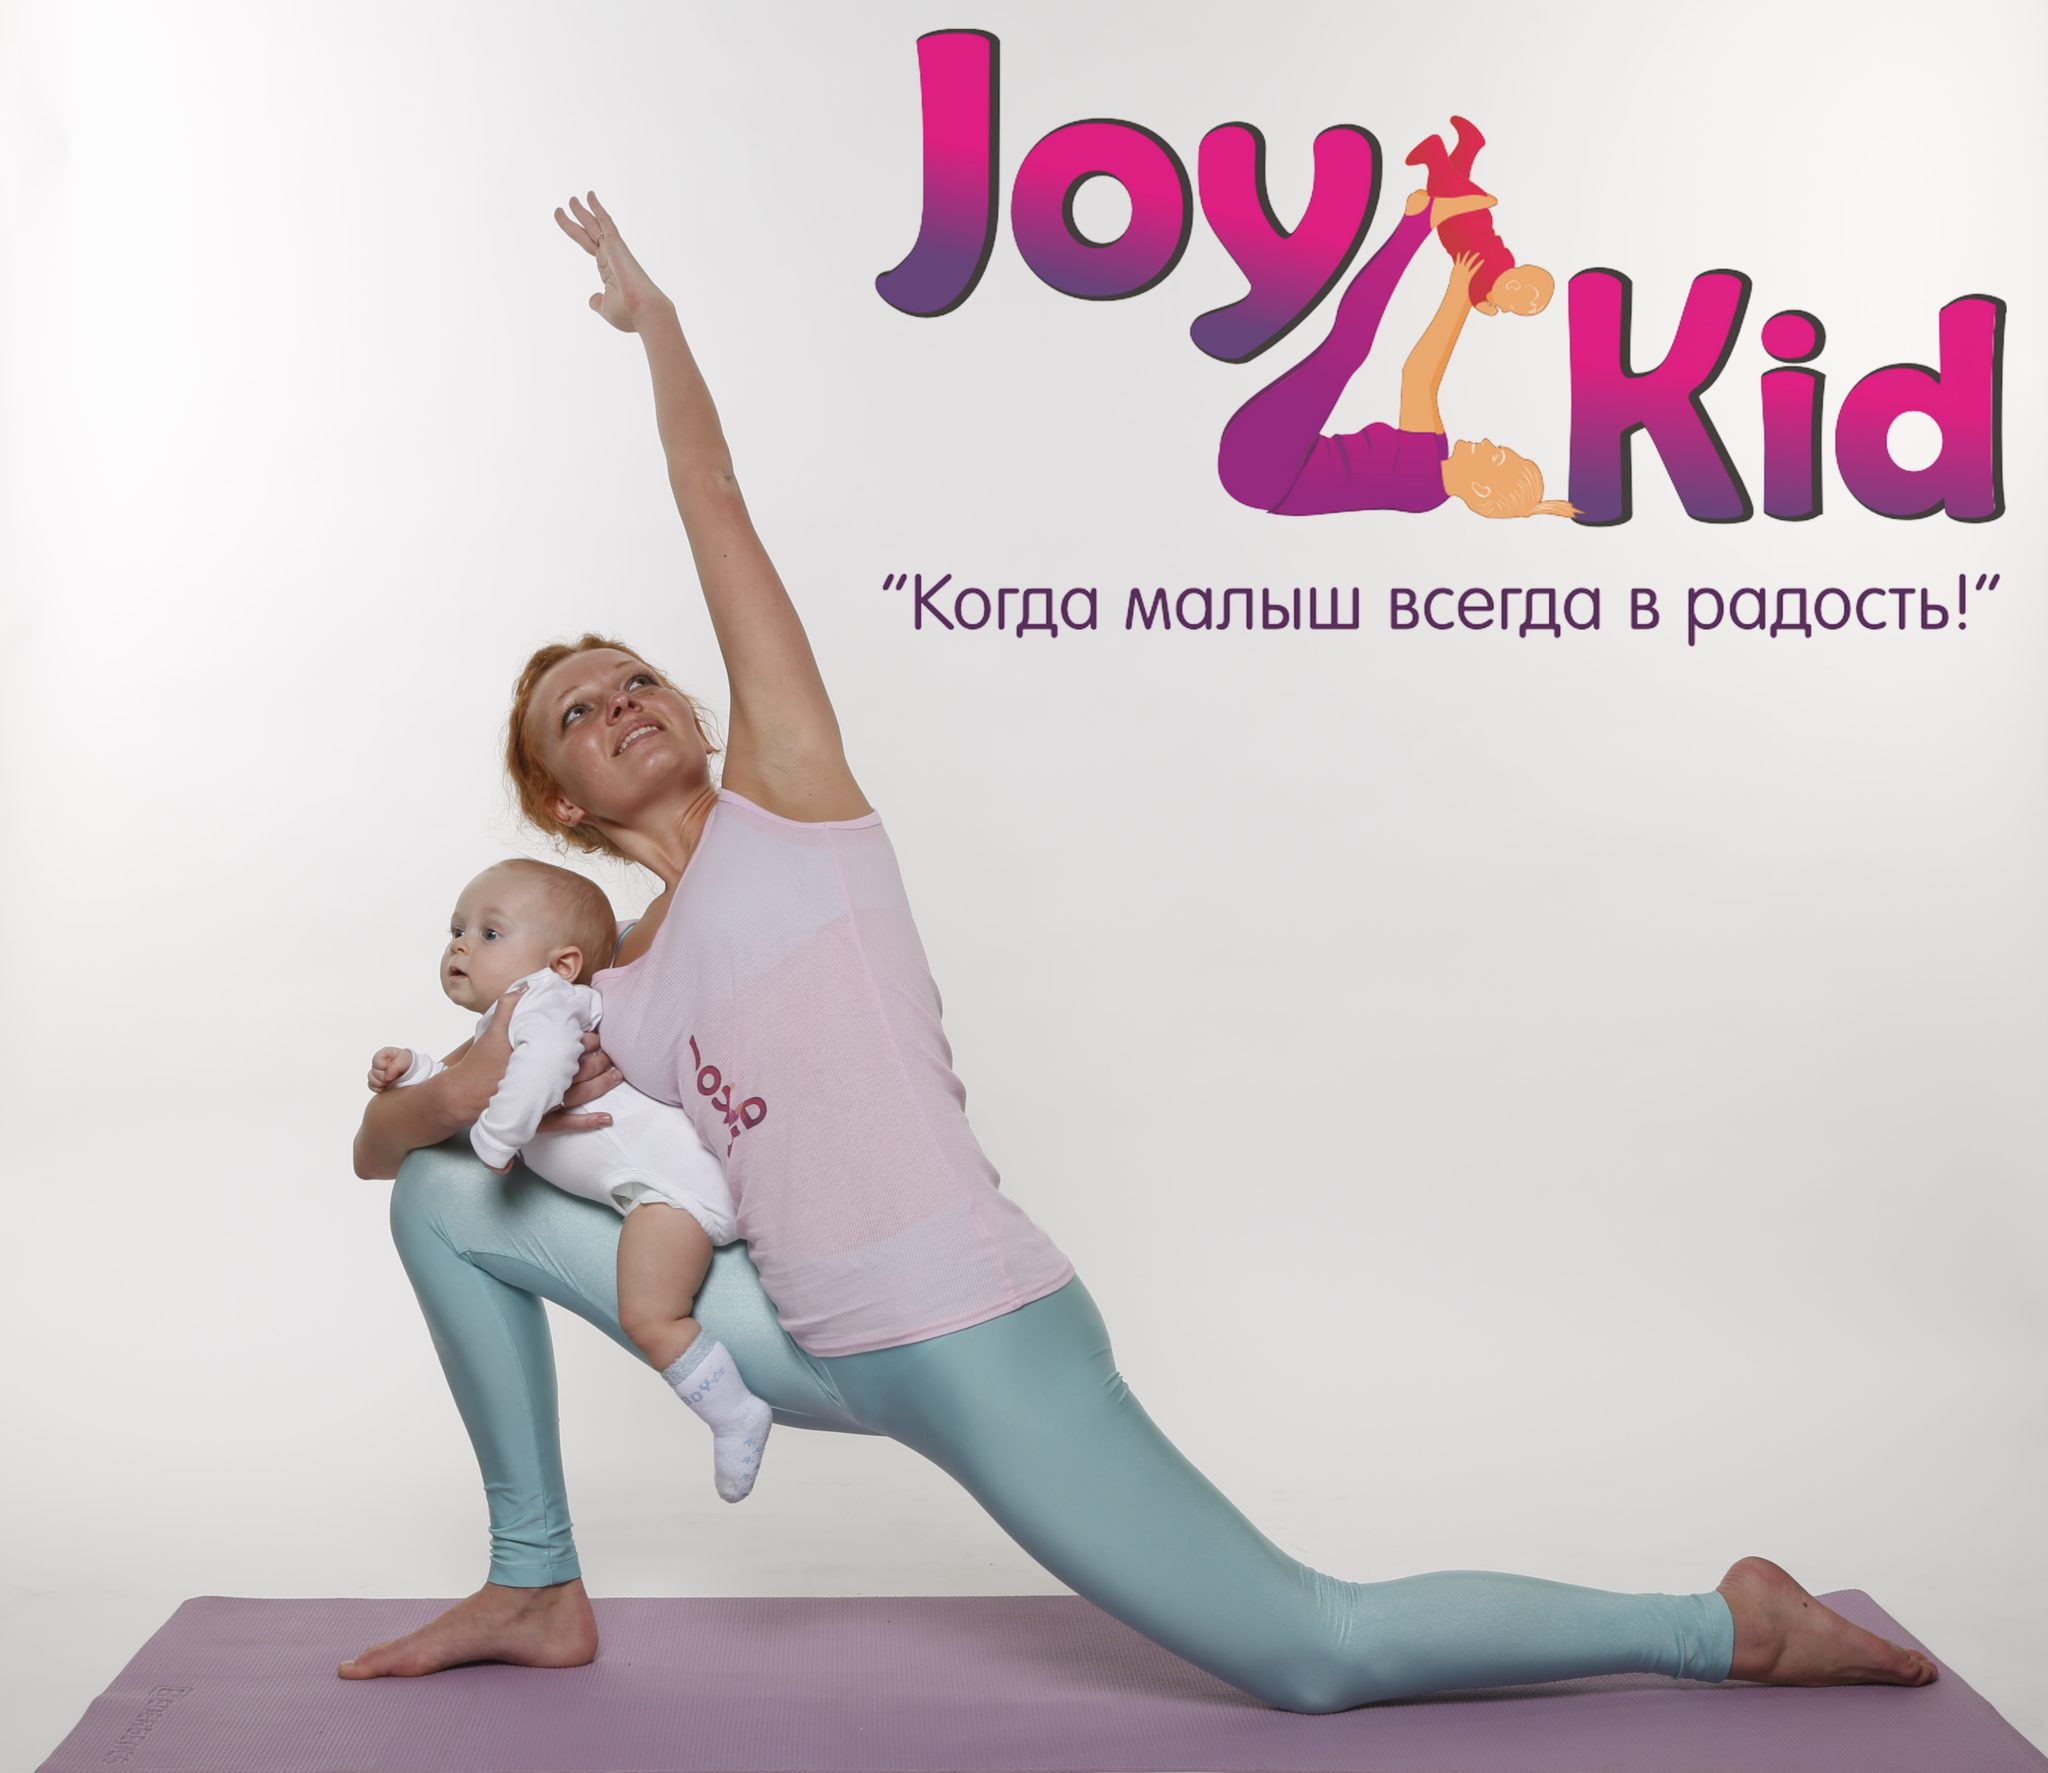 yogatherapy for mothers and babies older than 6 months